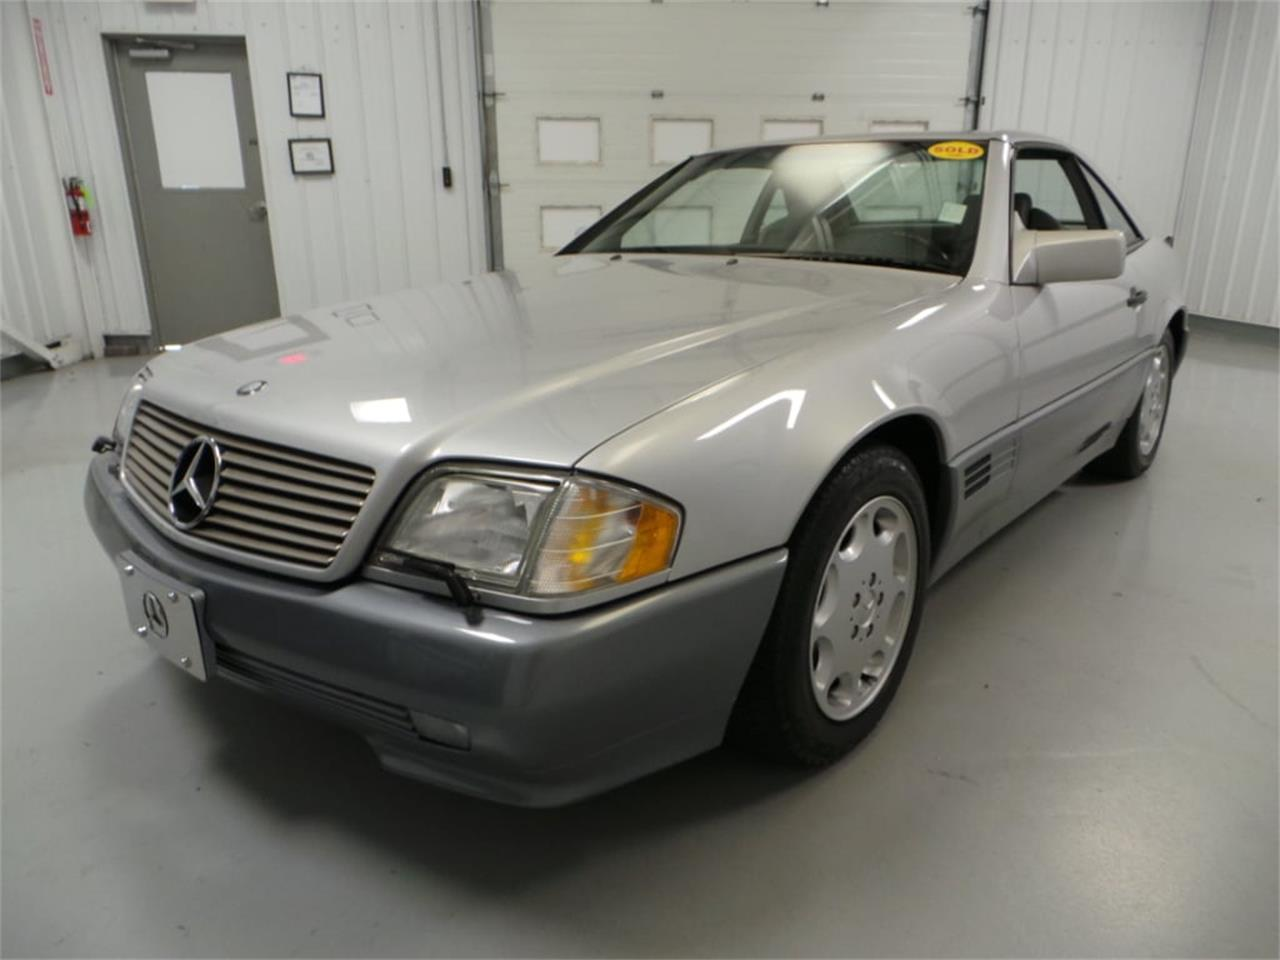 1995 Mercedes-Benz SL-Class (CC-1276245) for sale in Christiansburg, Virginia